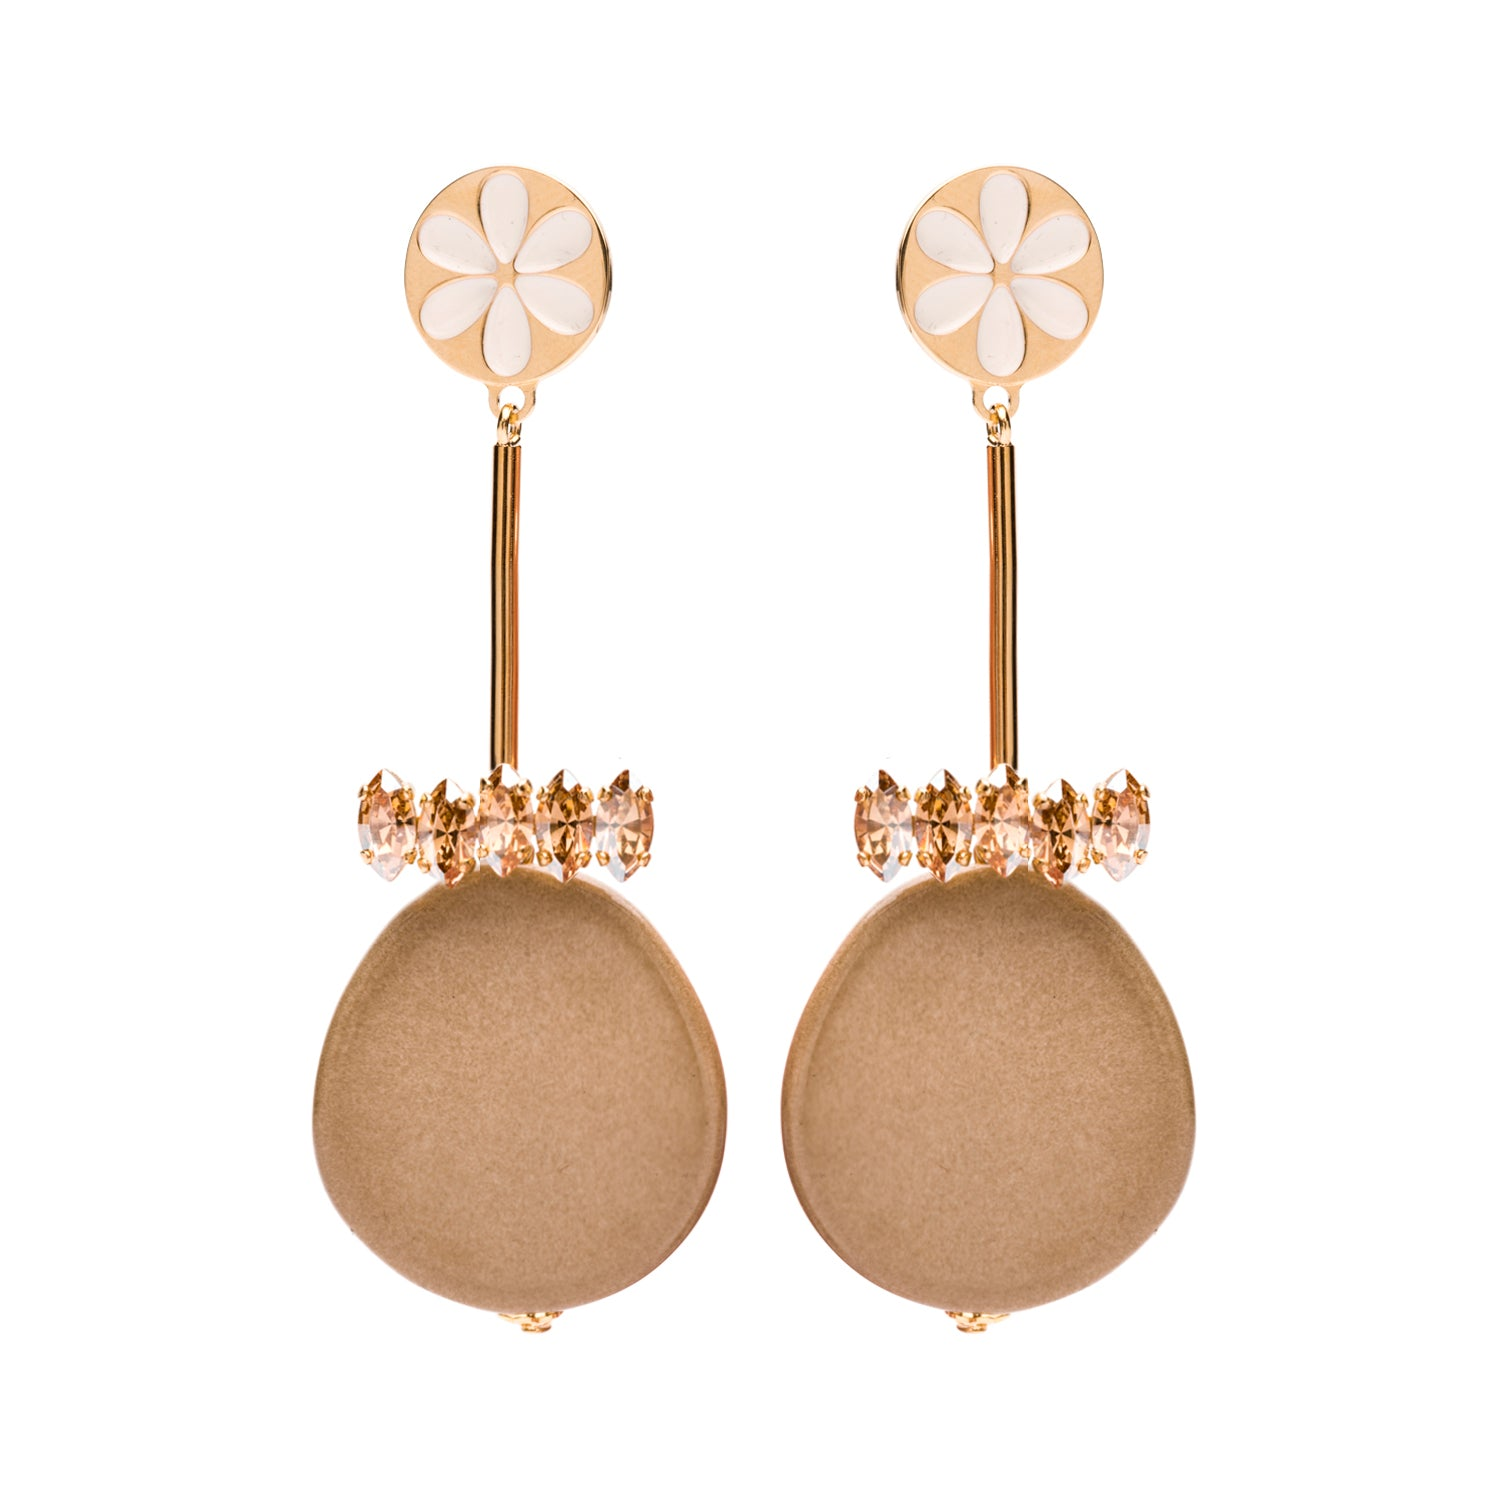 Peru enamel beige earrings - Souvenirs de Pomme